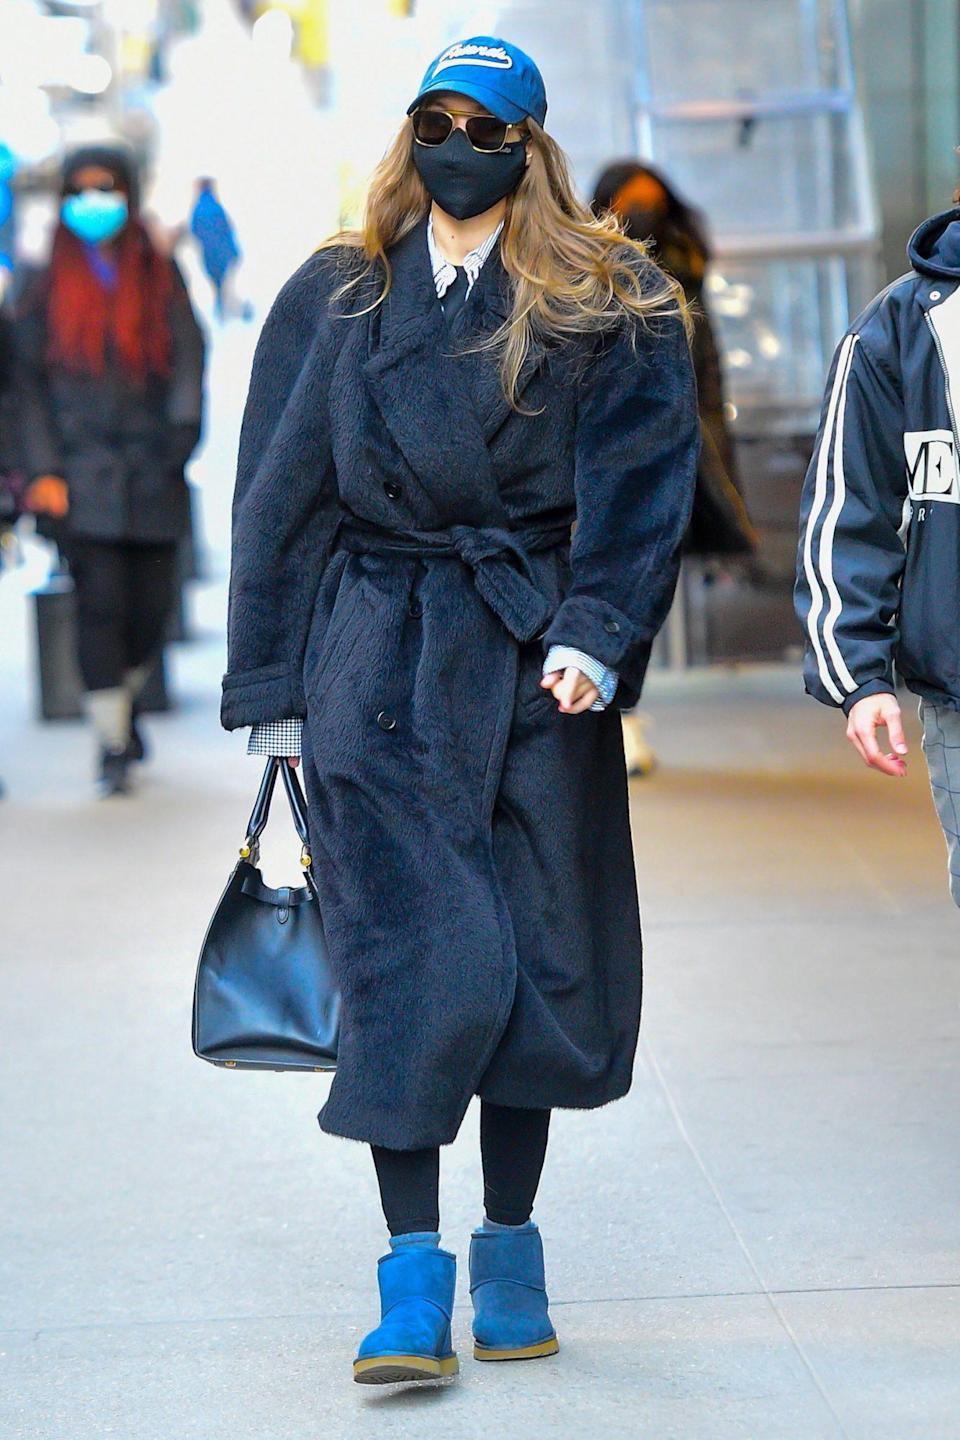 <p>Gigi Hadid is barely recognizable under a baseball cap, sunglasses and face mask as she bundles up to head to a photo shoot in N.Y.C. on Saturday.</p>